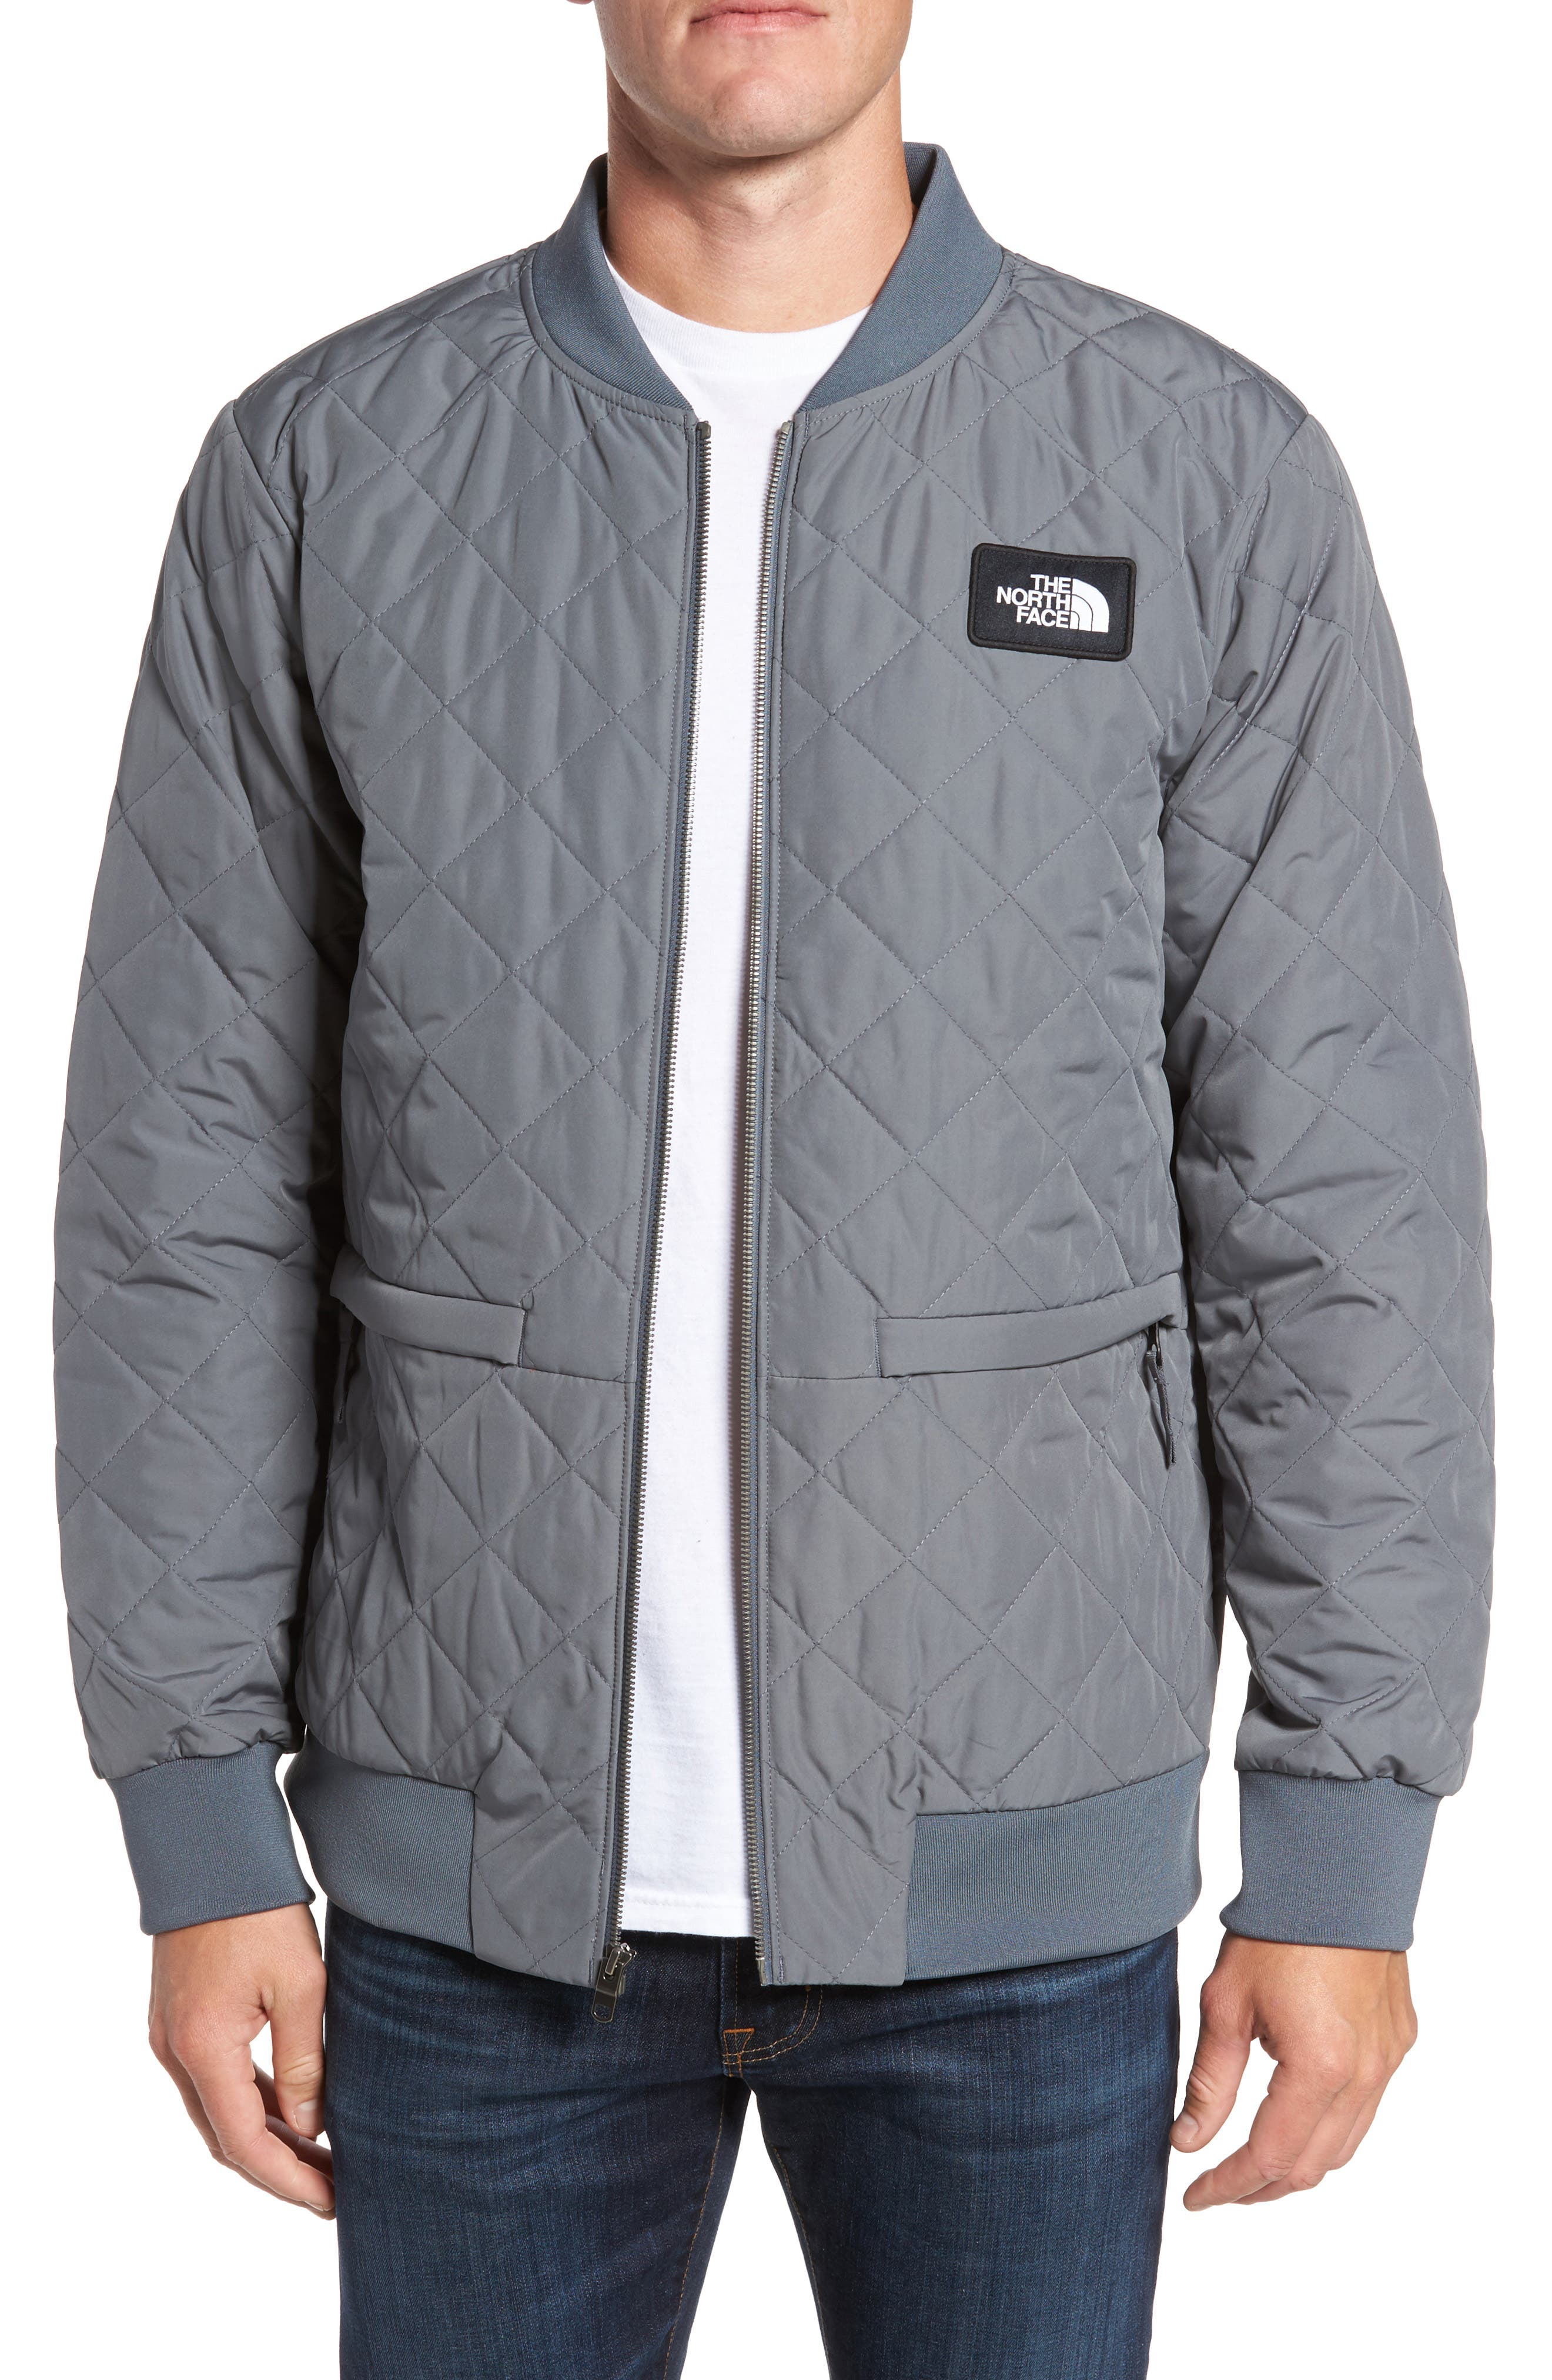 Distributor Quilted Bomber Jacket,                             Main thumbnail 1, color,                             Grey